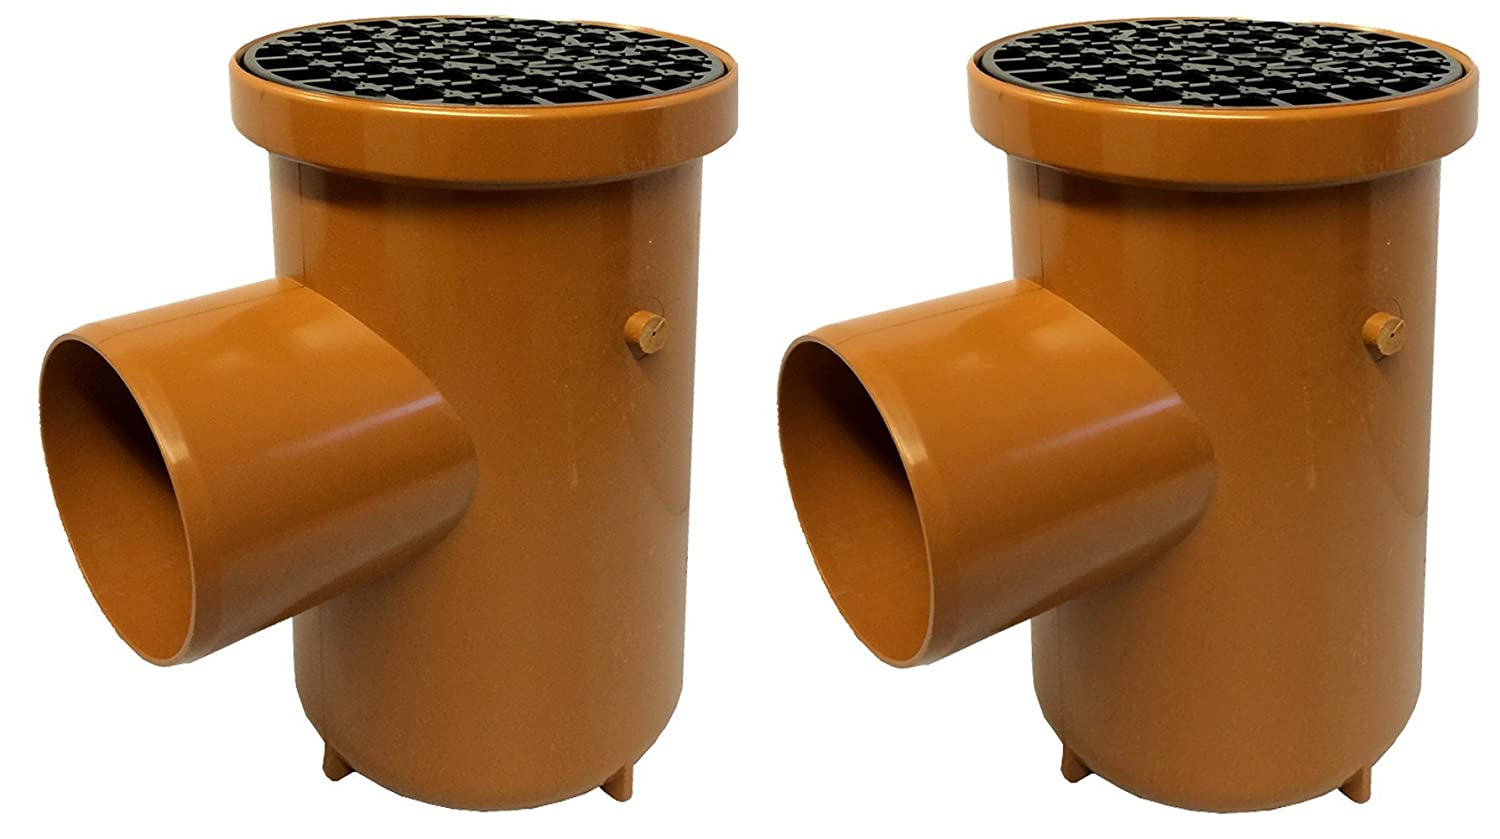 2 x Aquaflow Universal Underground Plain Ended Roddable Gully 110mm Round KALSI